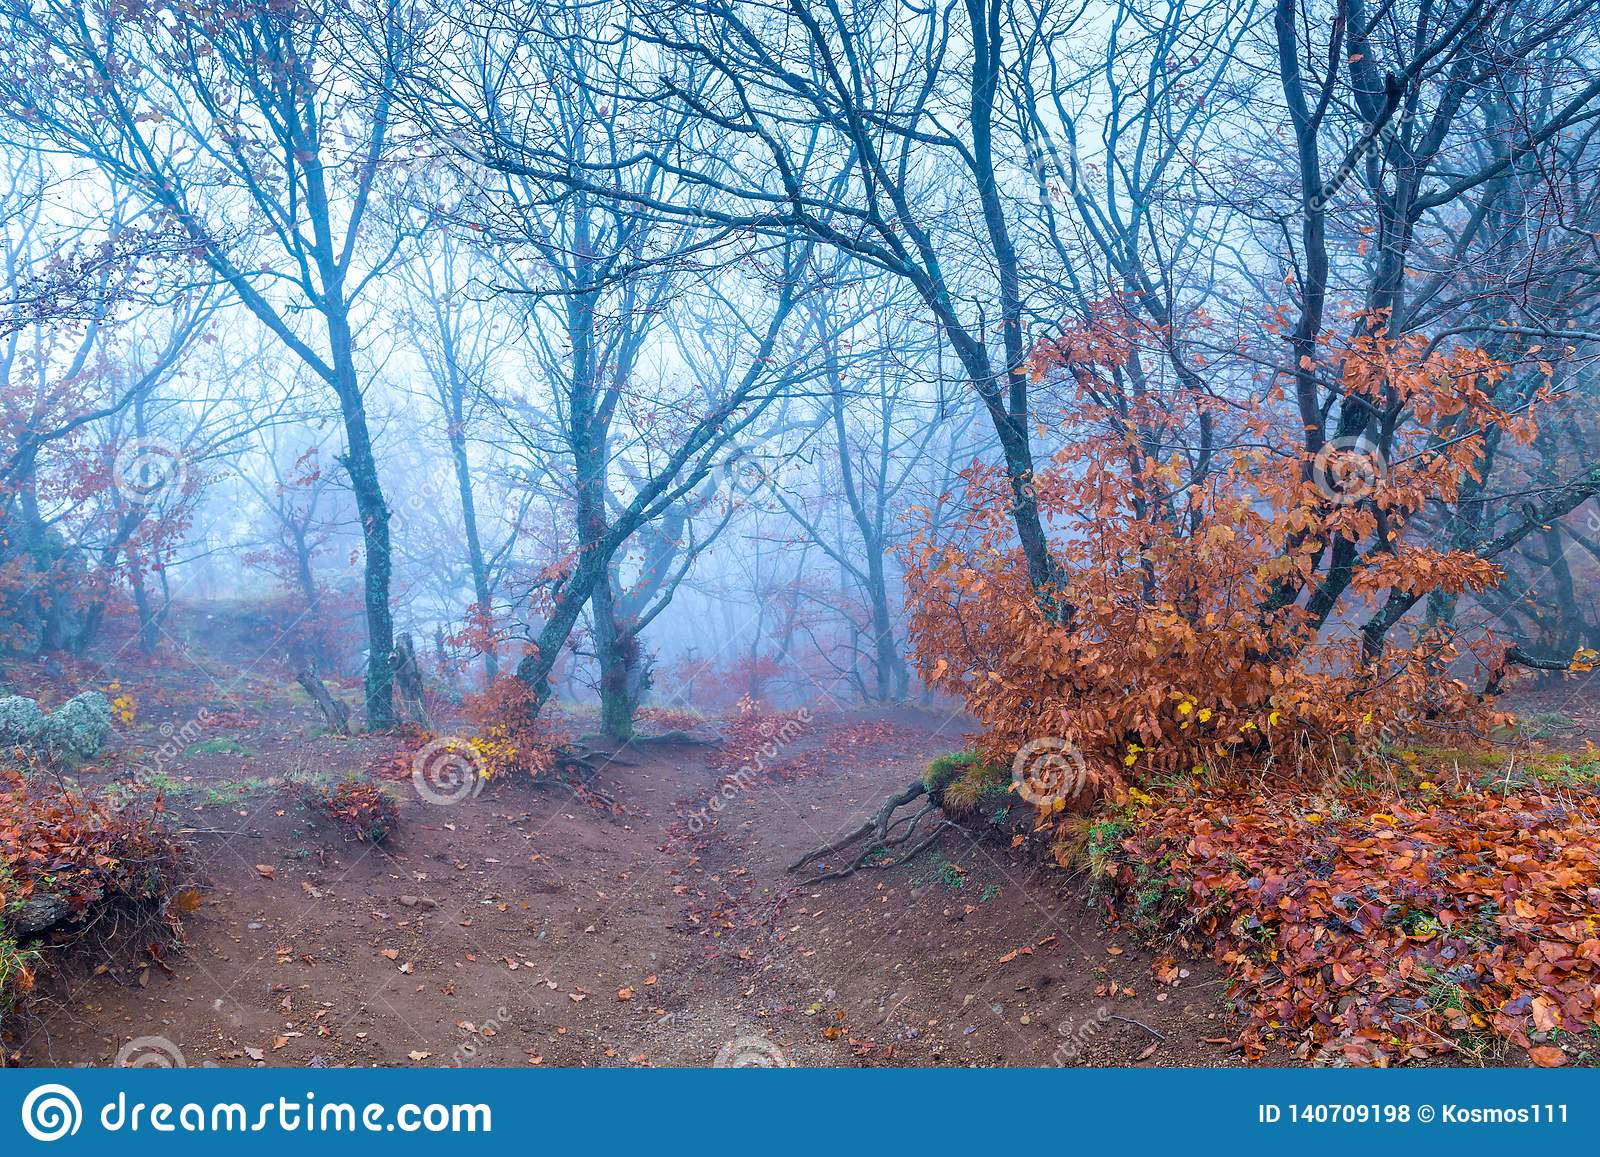 Mystical landscape of mountains, trees on a mountain in dense fog